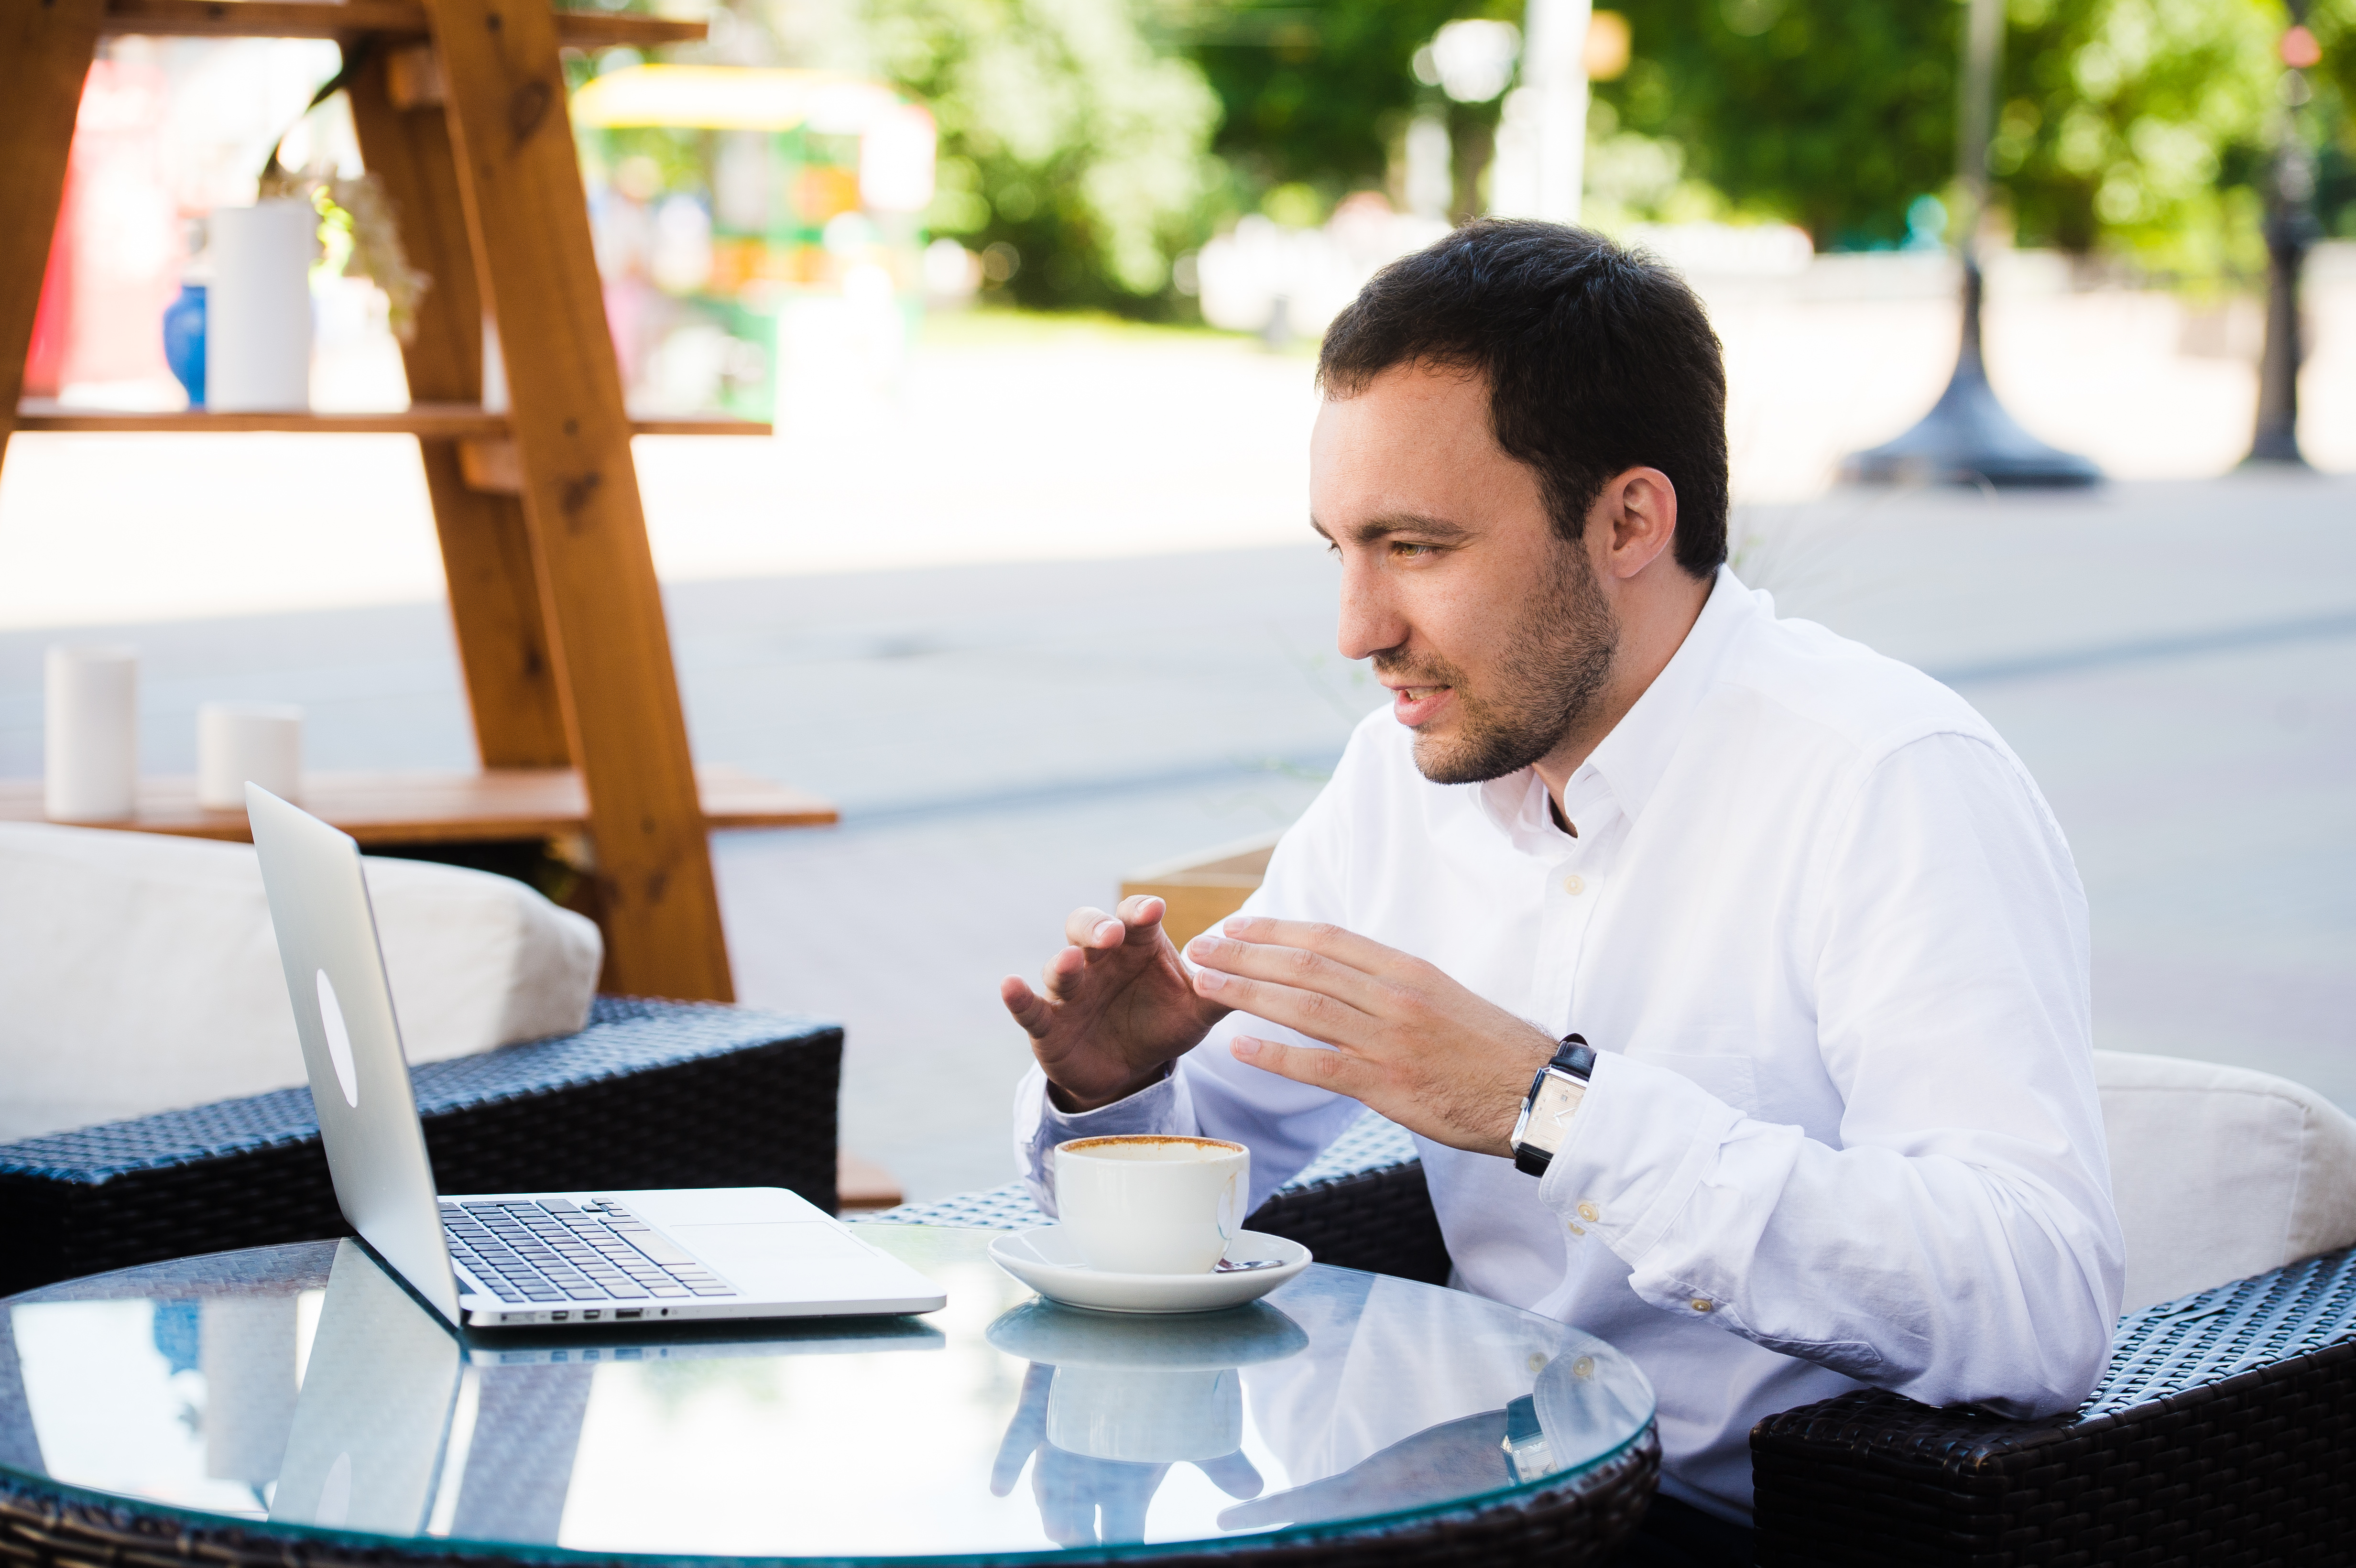 working remotely laptop half workforce cafe remote park outdoors dressed skype talking conference hotzone businessman relax shirt premium using business